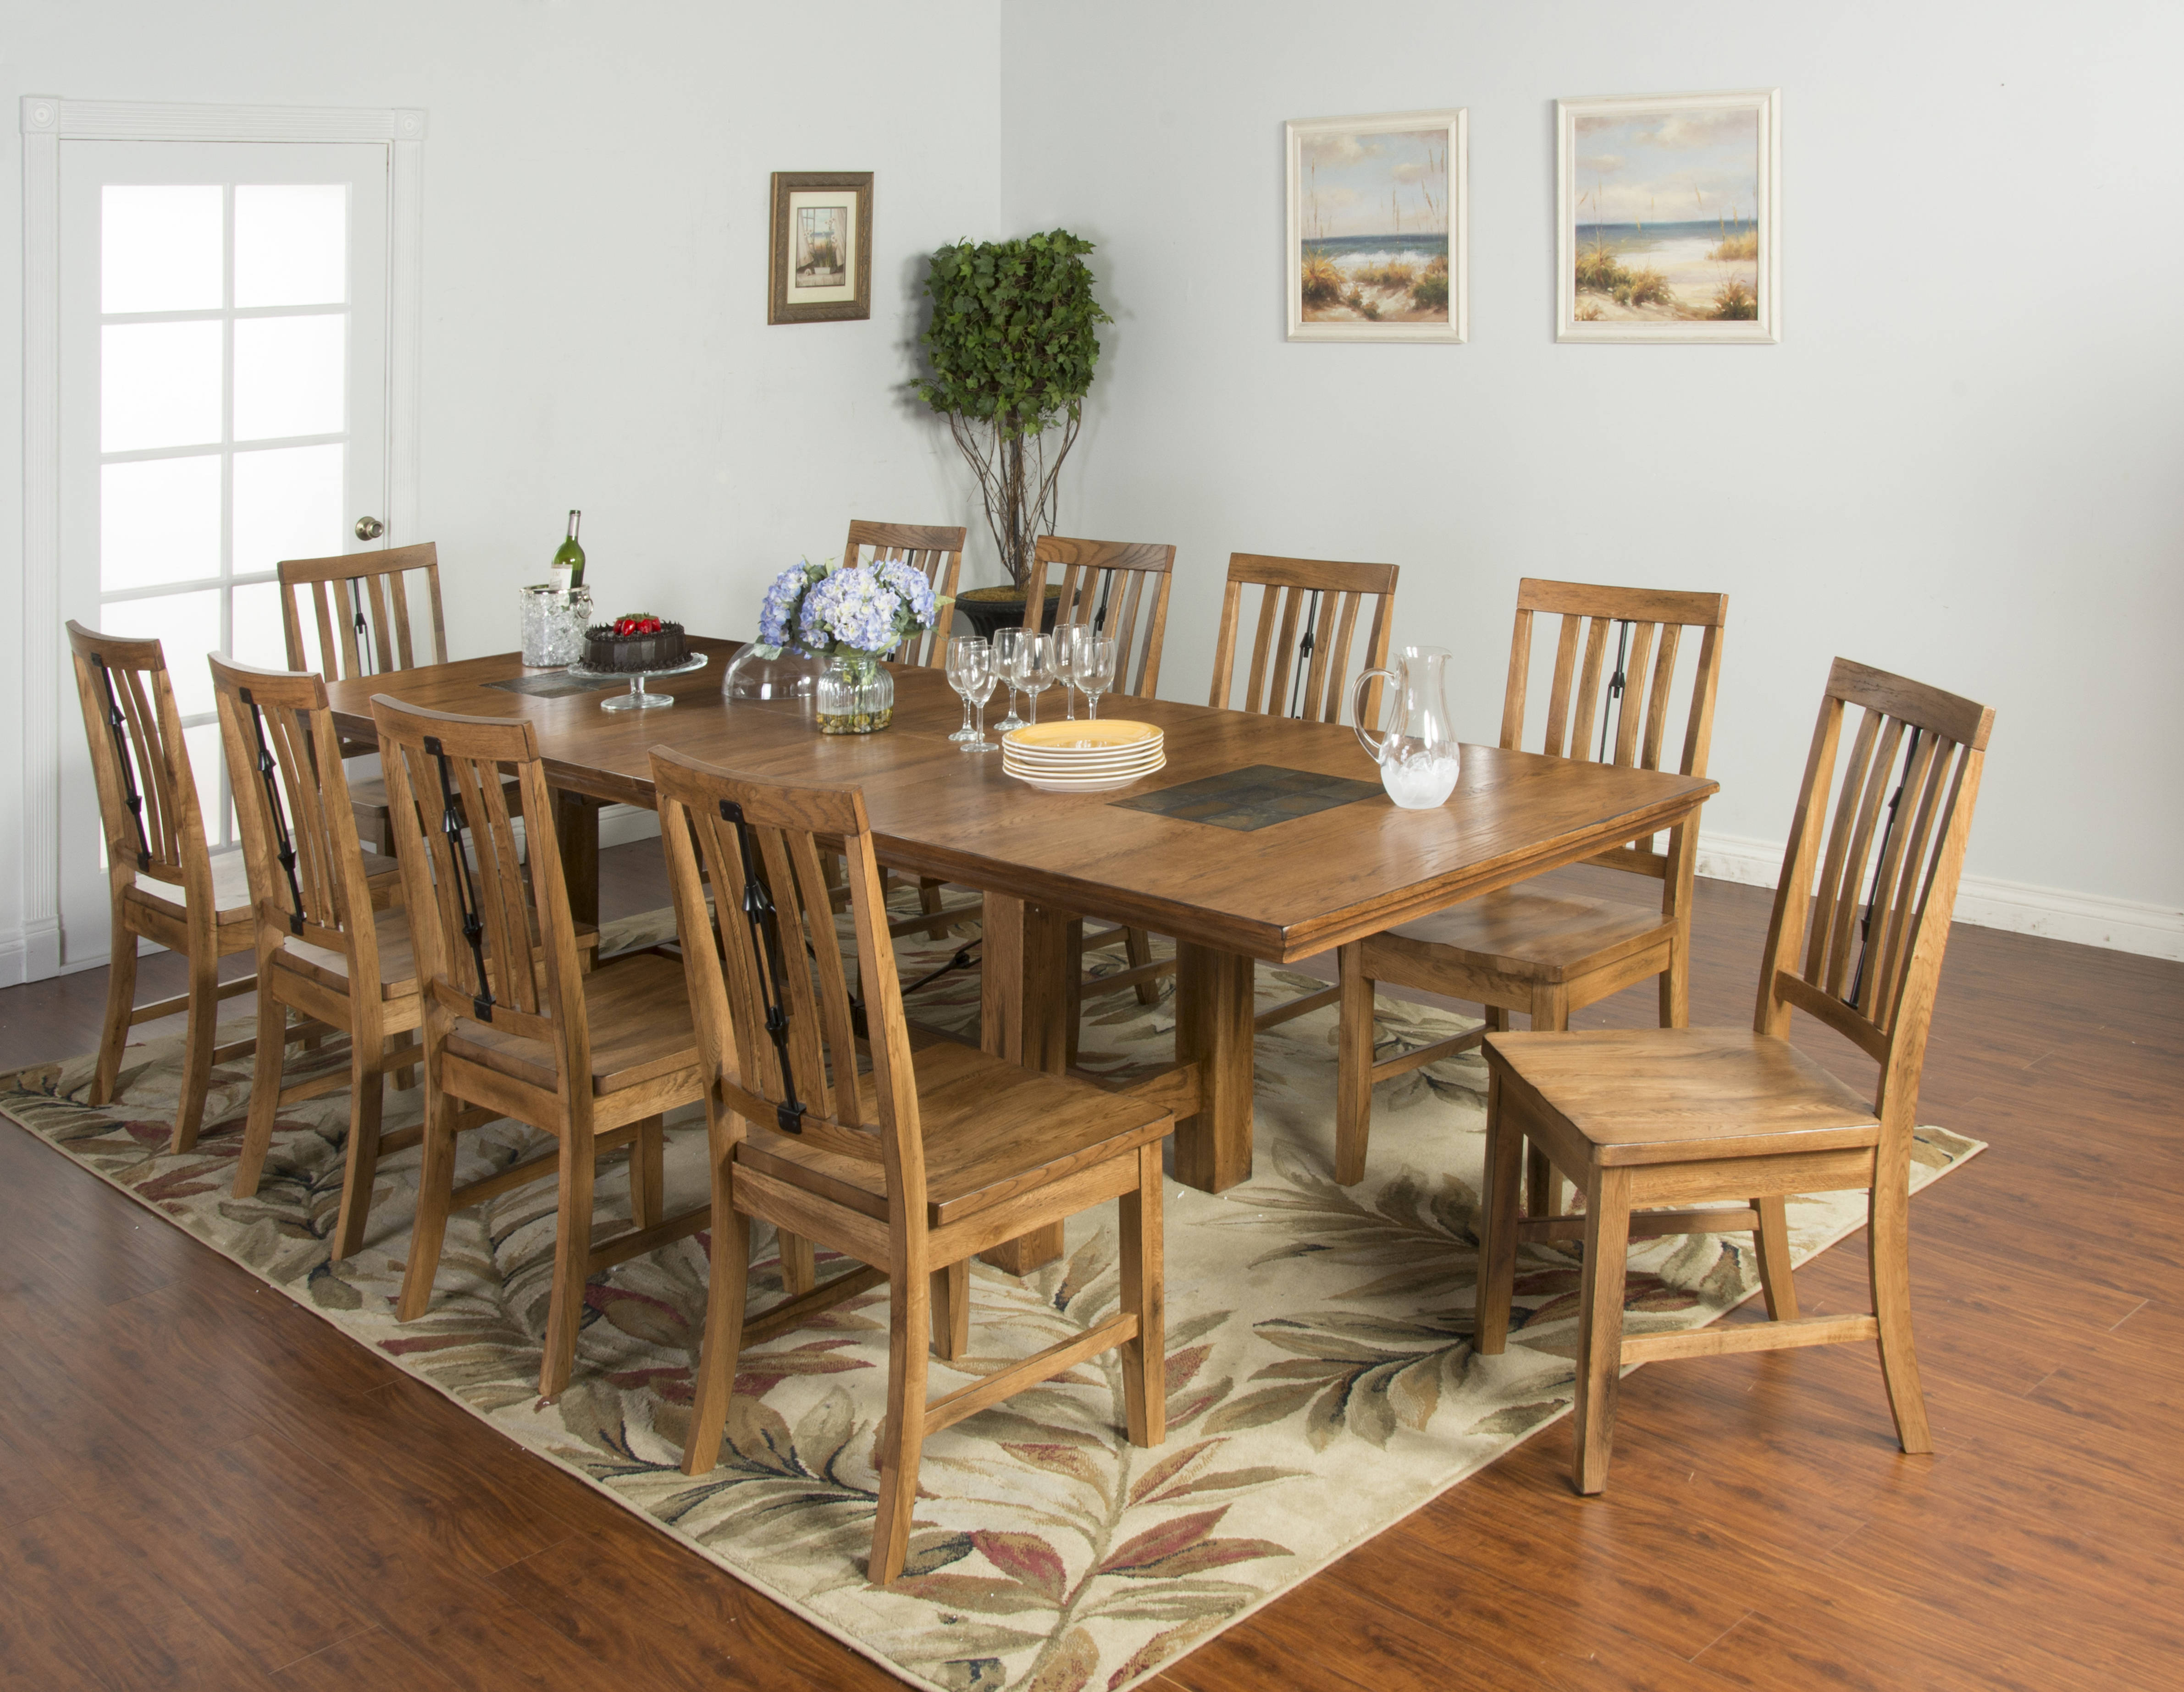 sedona rustic oak wood seat chair and table 11pc dining